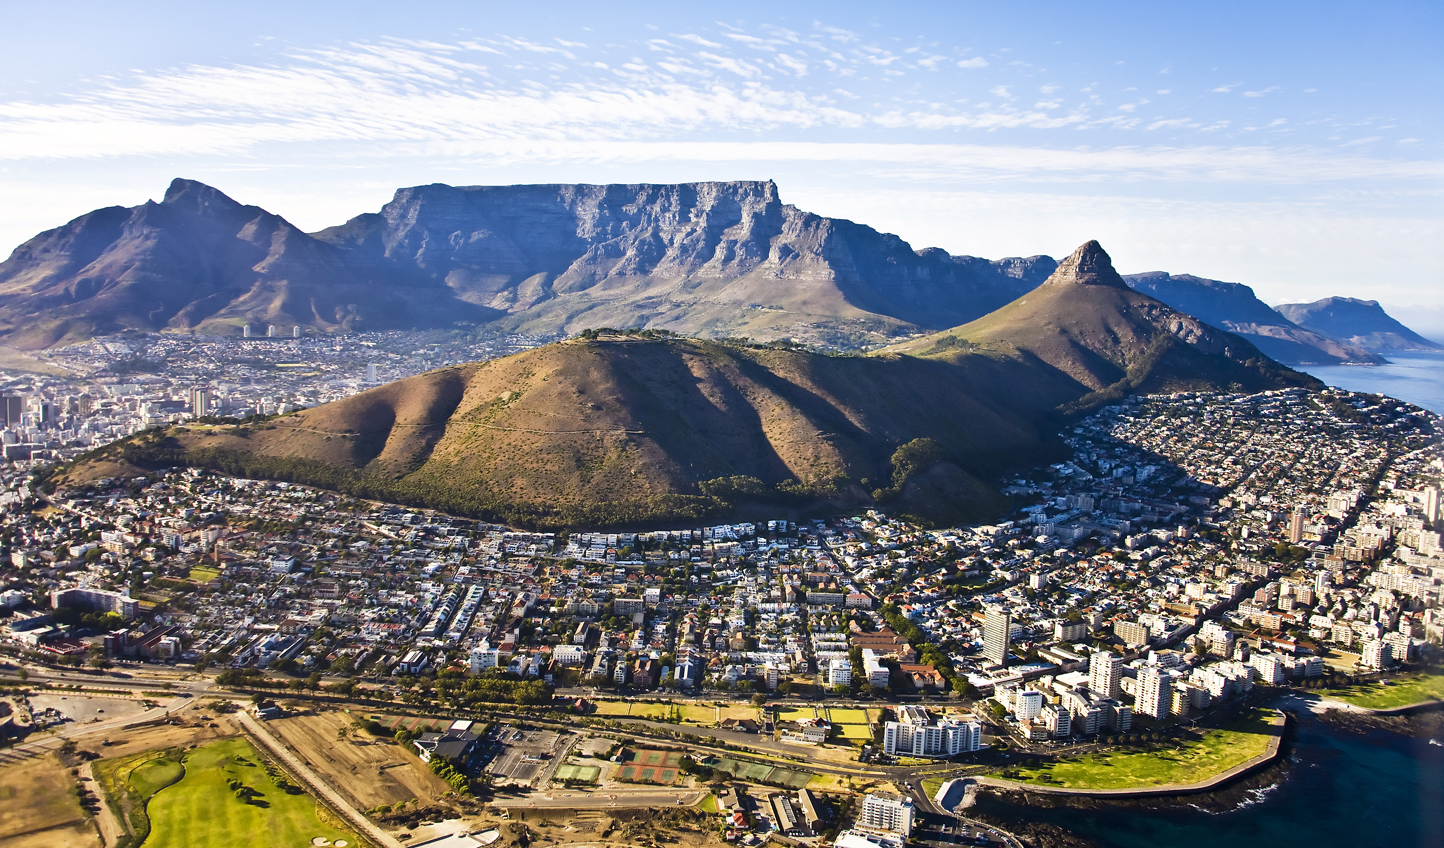 Arrive into sweeping city of Cape Town, bordered by mountains and oceans